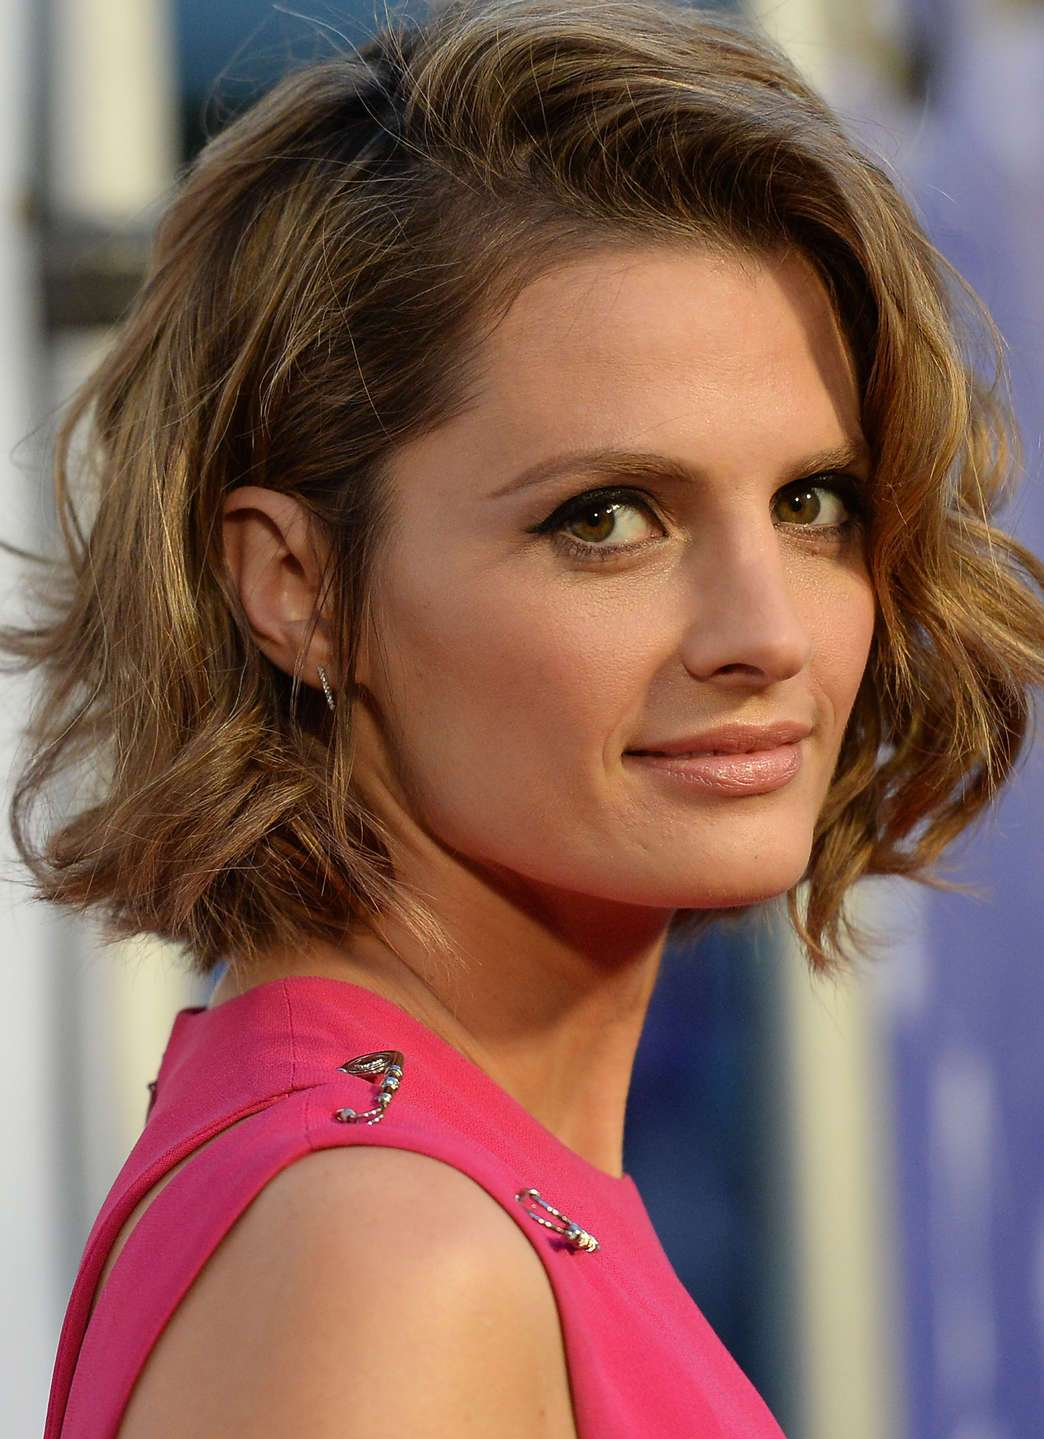 Castle stana katic and nathan fillion dating 10